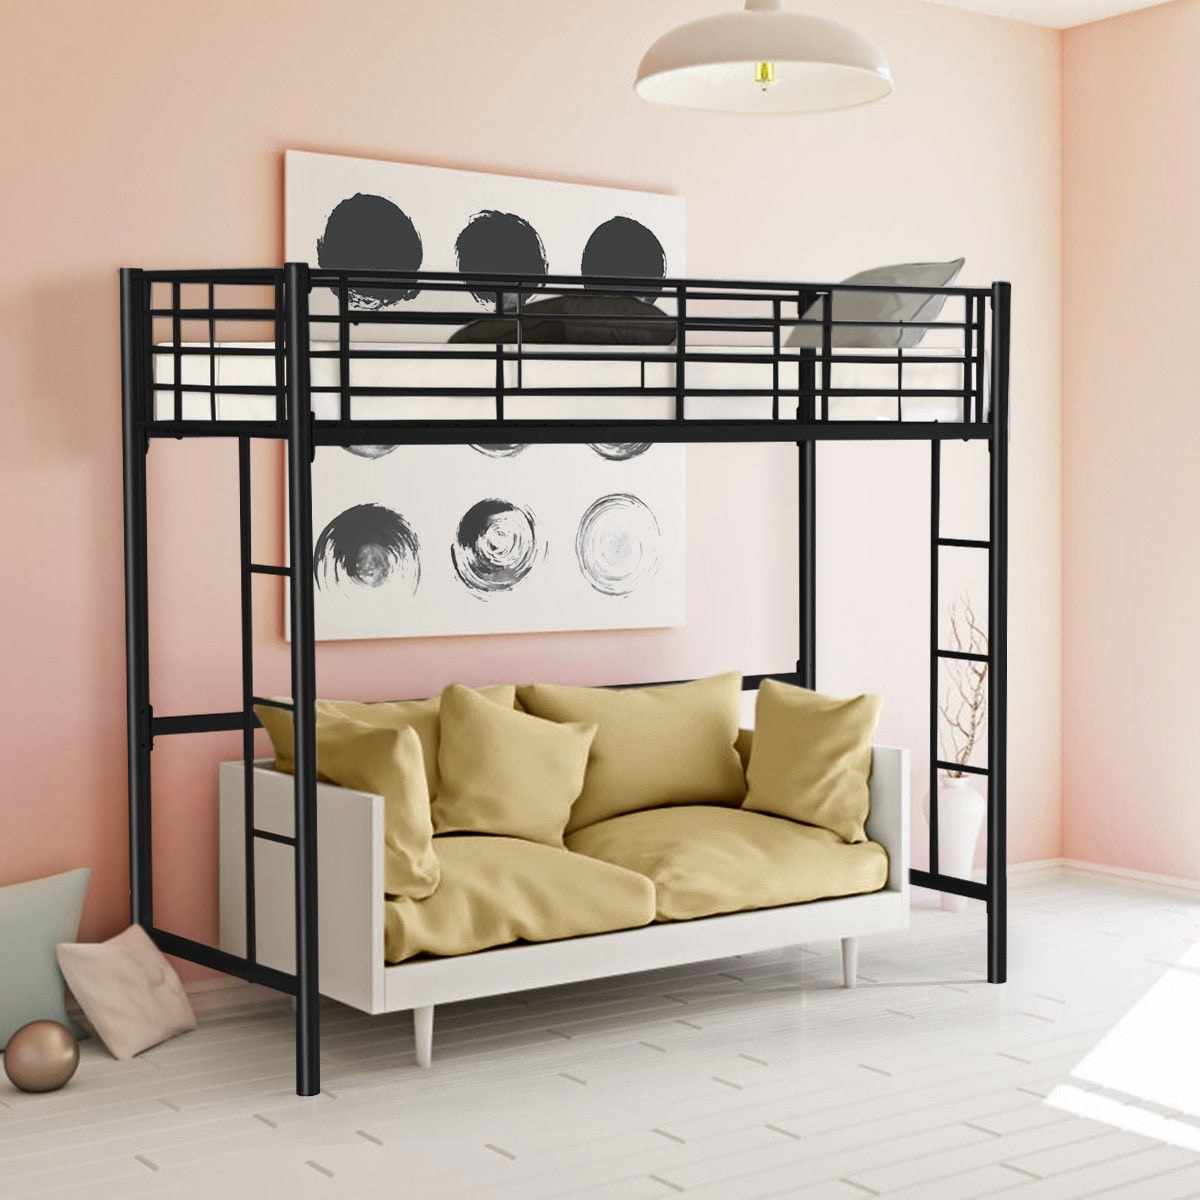 Shop Gymax Twin Loft Bed Metal Bunk Ladder Beds Boys Girls Teens